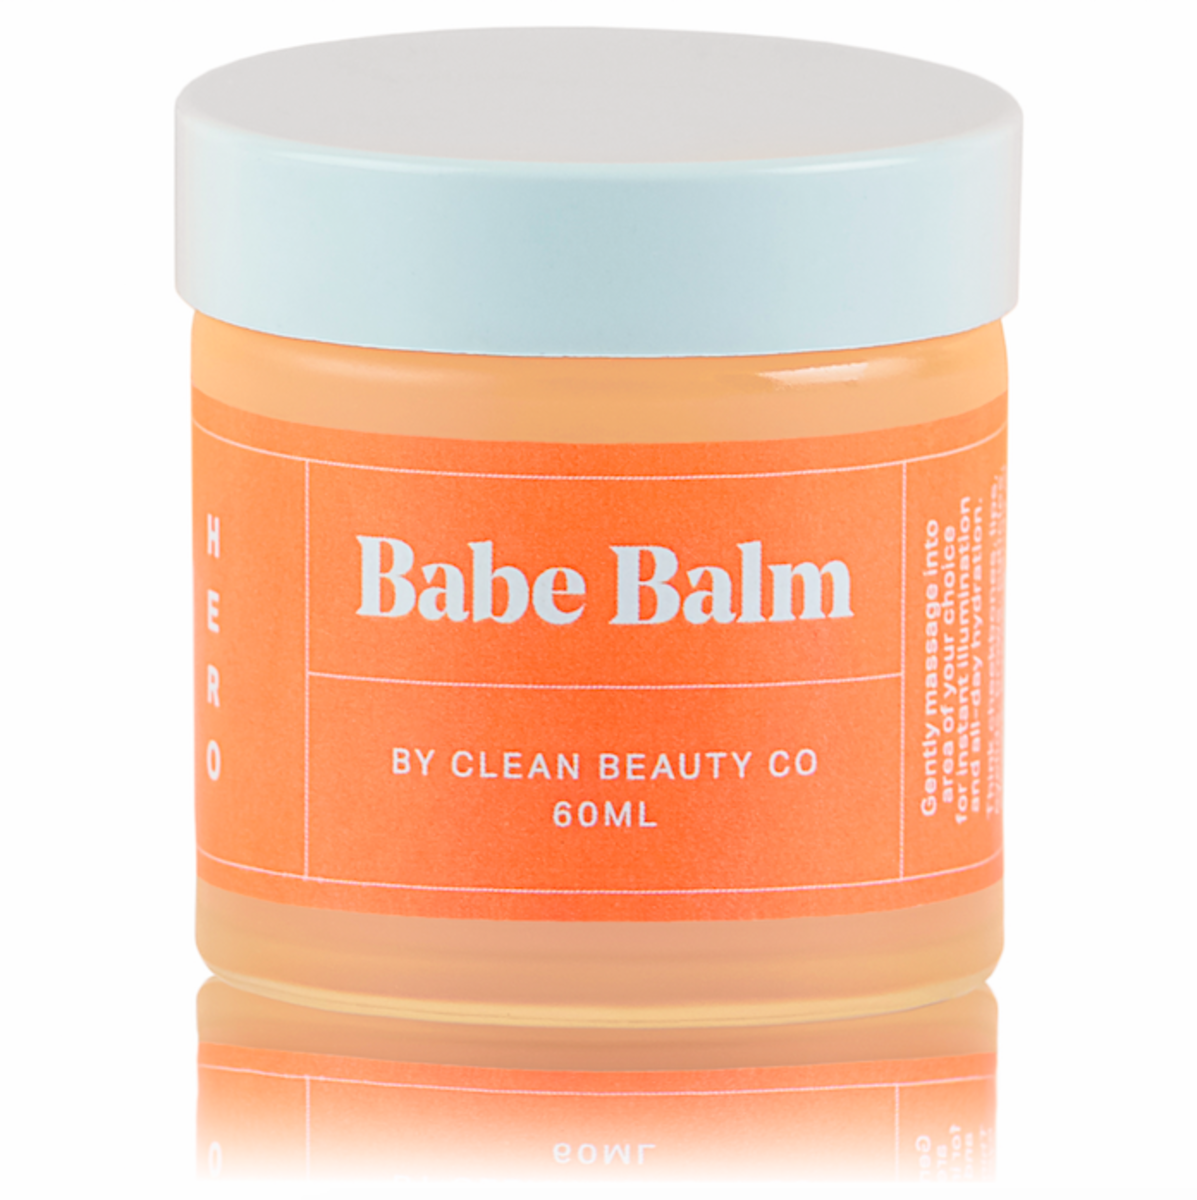 What is beauty balm